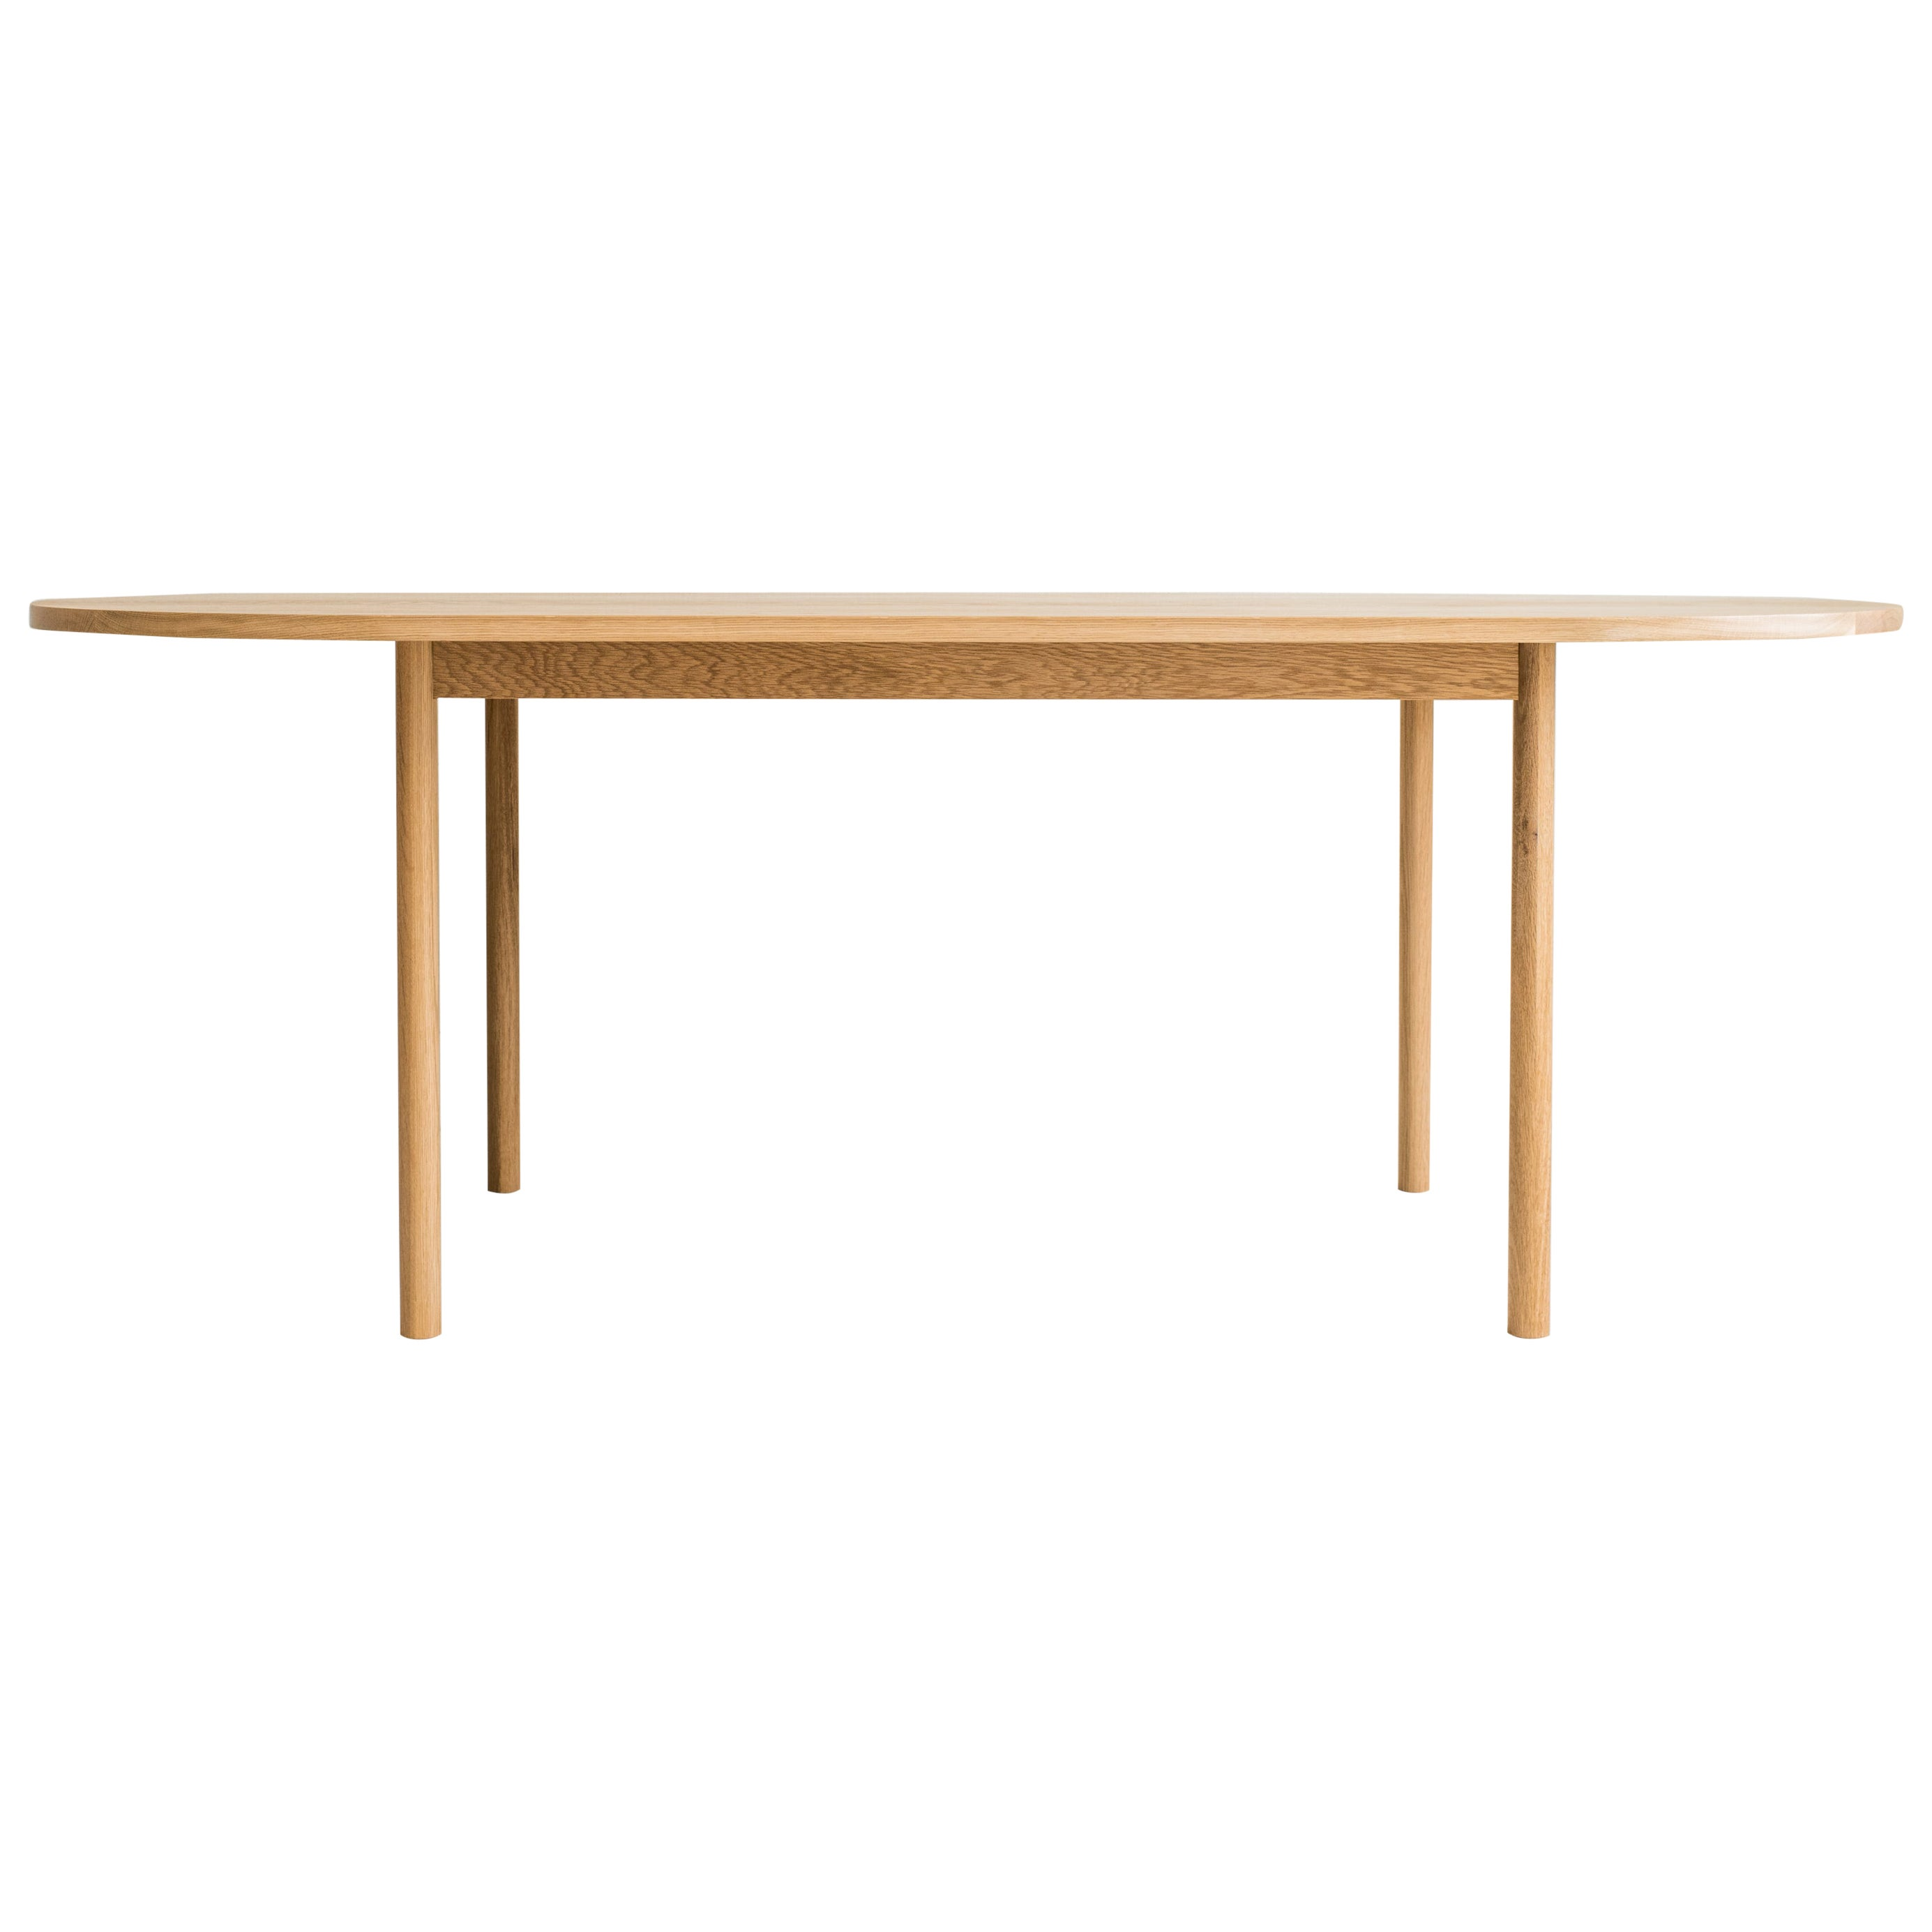 Dining Table One by Campagna, Contemporary Minimal Pill Shaped Wooden Table